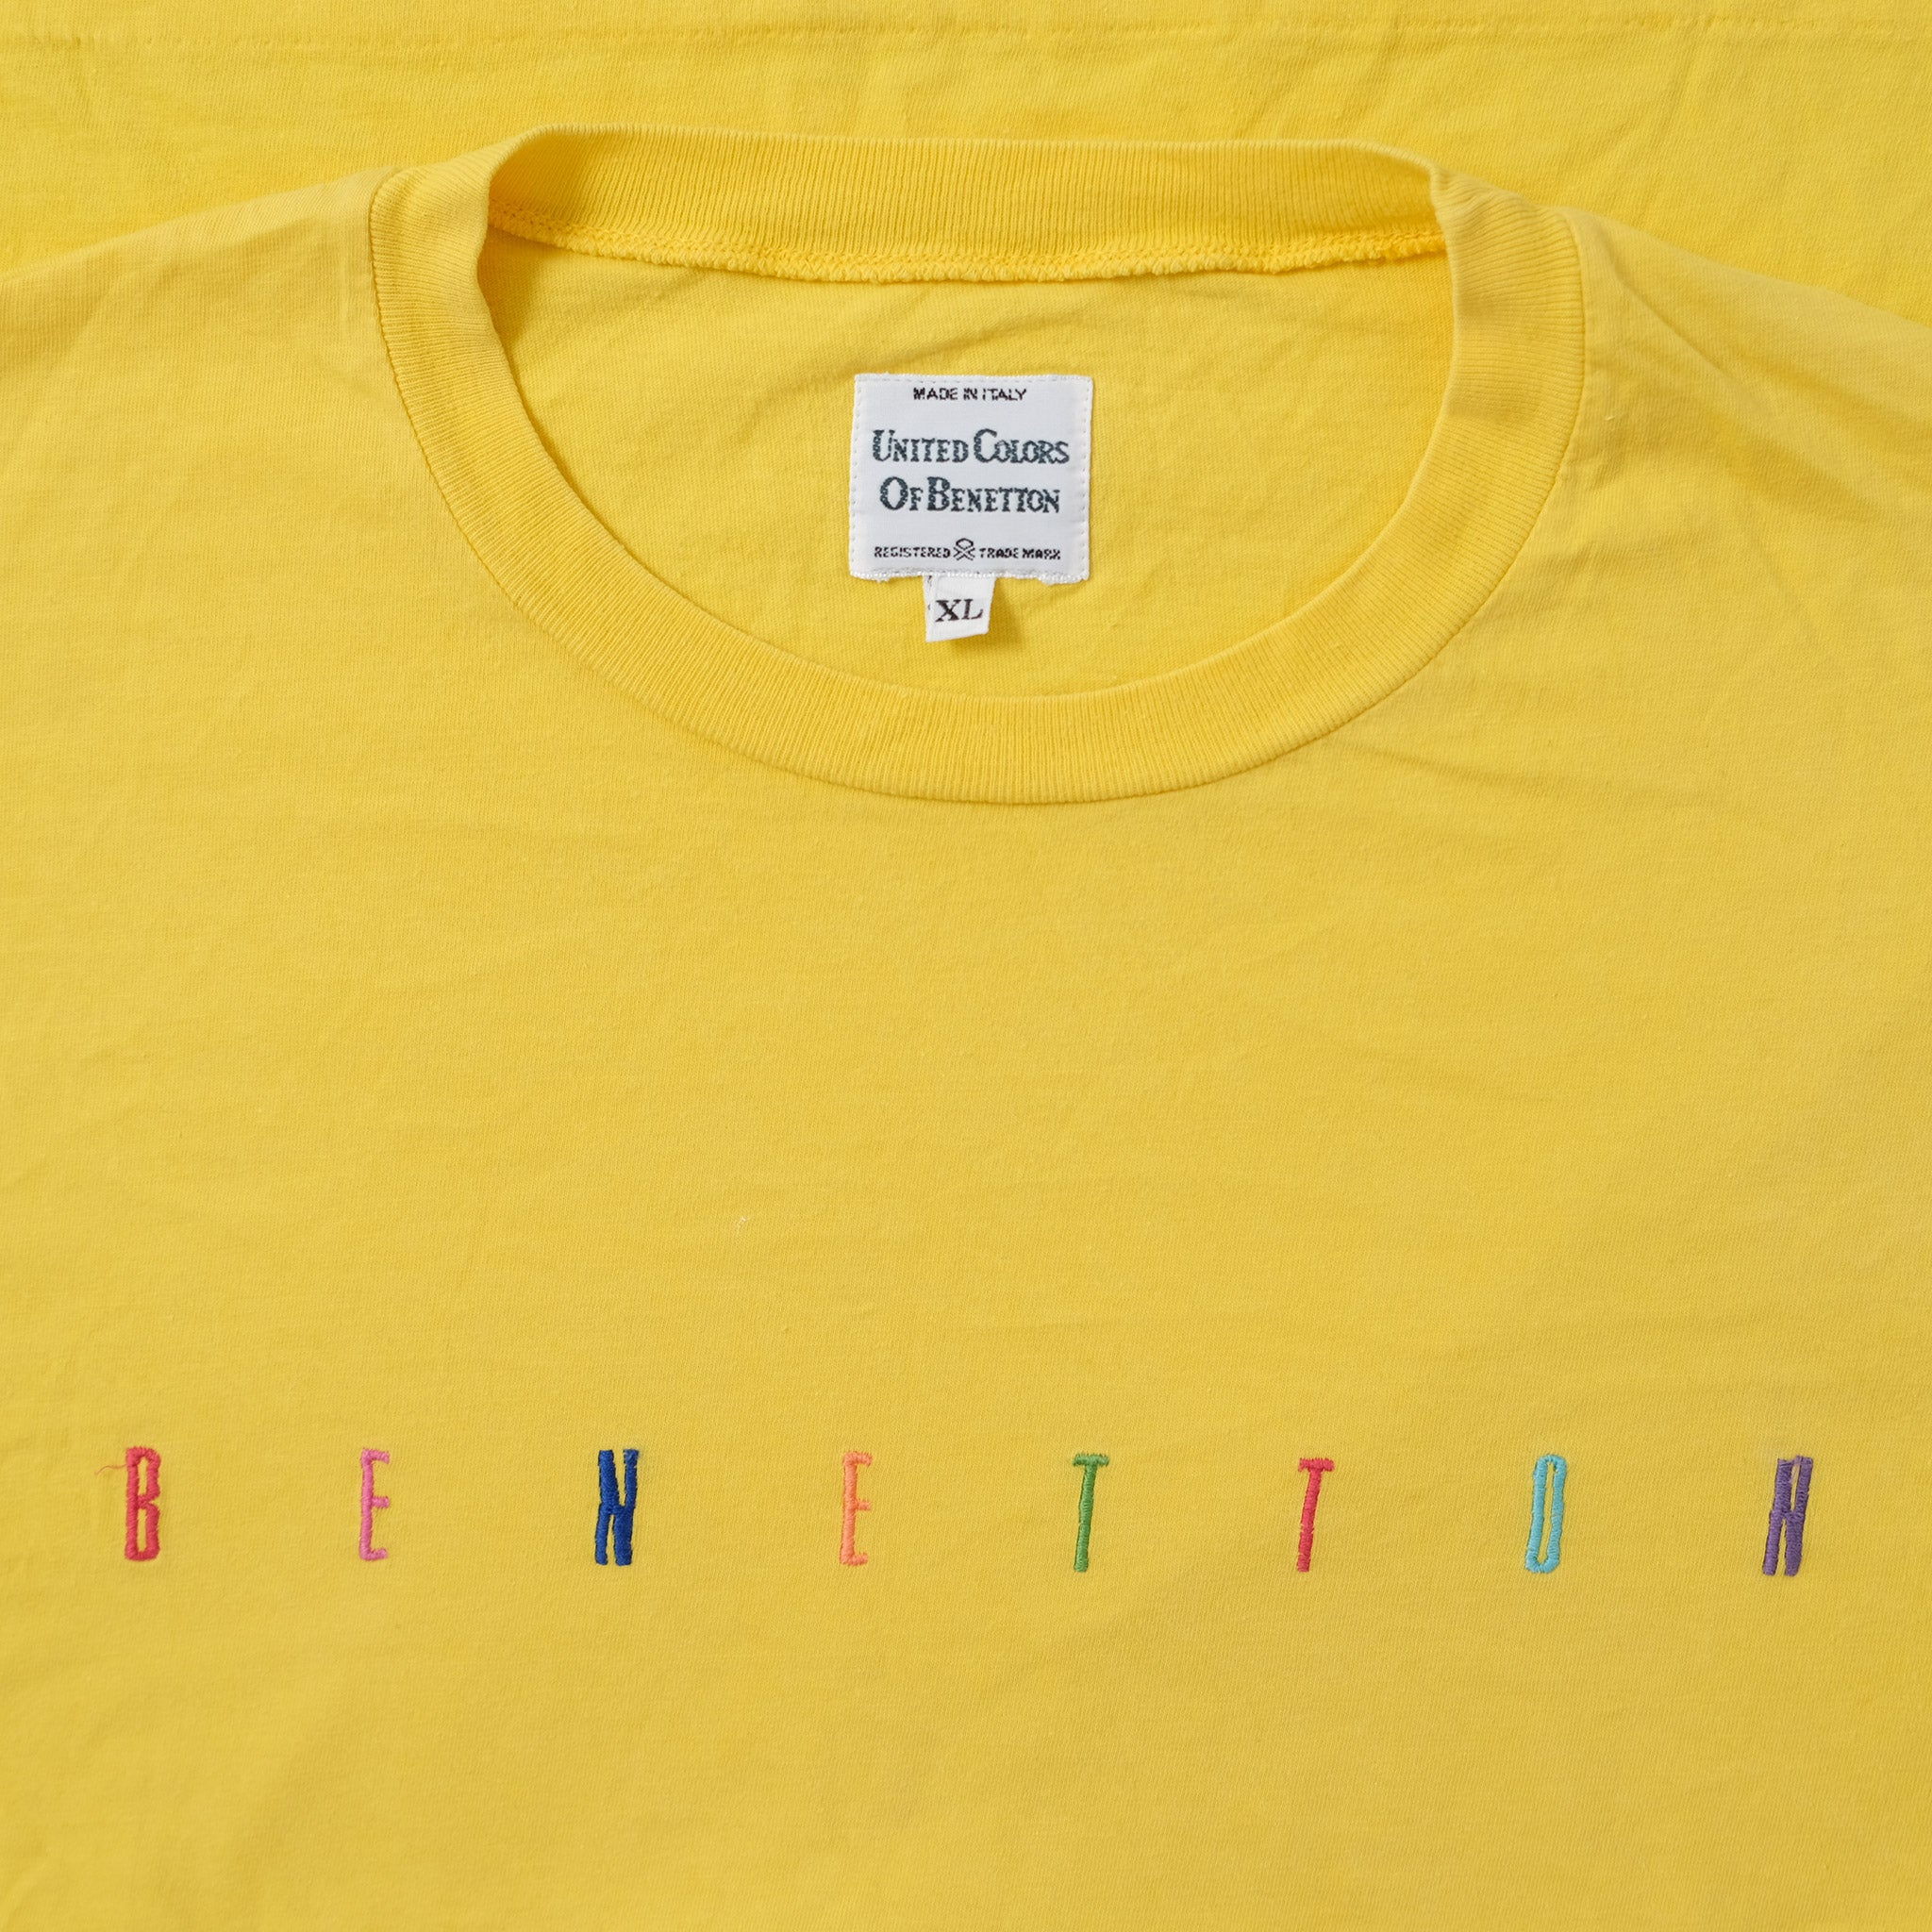 Vintage Bennetton T-Shirt Medium / Large